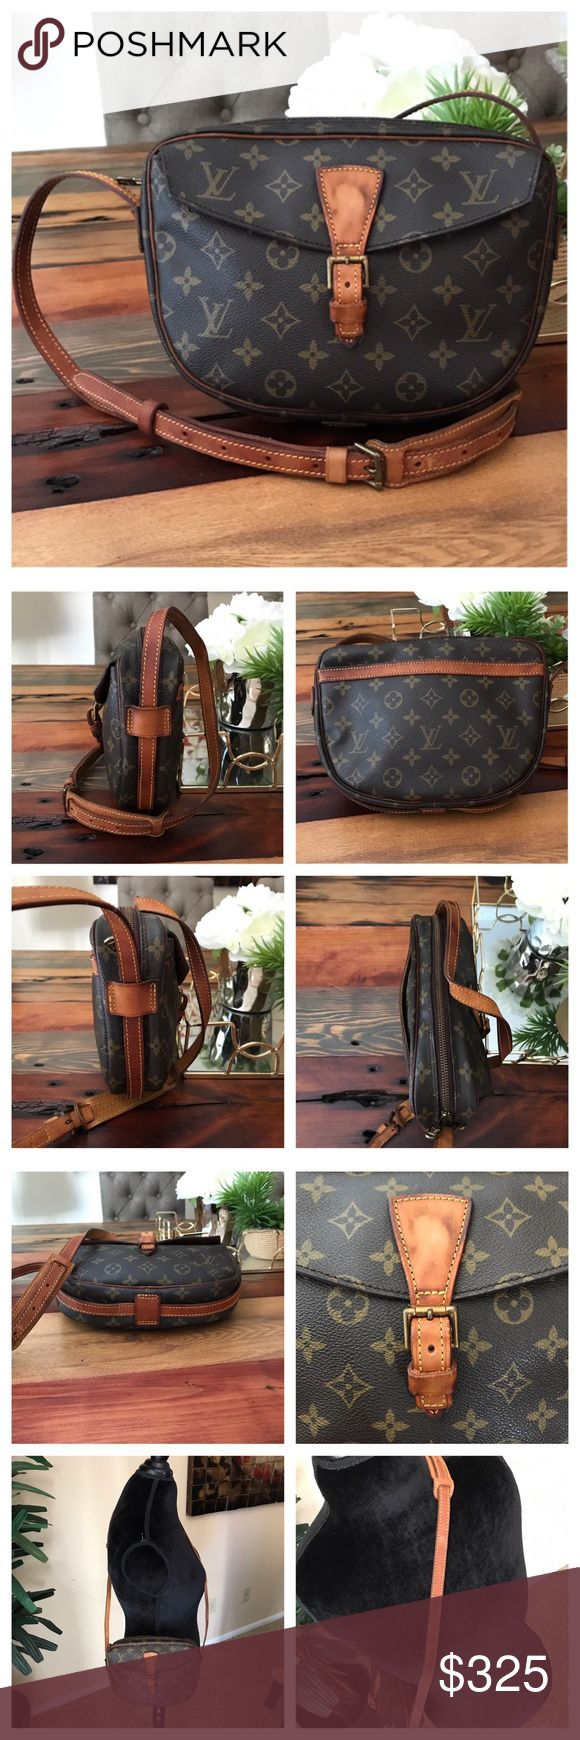 "Authentic Louis Vuitton Jeune Fille GM 100% Authentic Louis Vuitton Jeune Fille GM.   Monogram canvas has no scratches or tears.  Piping has cracks.  Leather has wear and cracks.  Stitching is good.  Hardware is tarnished.  Strap has cracks and stitching is good.   Inside is clean.  Buckle strap has cracks.  Pocket has been cleaned.  No peeling or sticky.  W10.6xH8.2xD1.9"".  I do not trade. Louis Vuitton Bags Crossbody Bags"